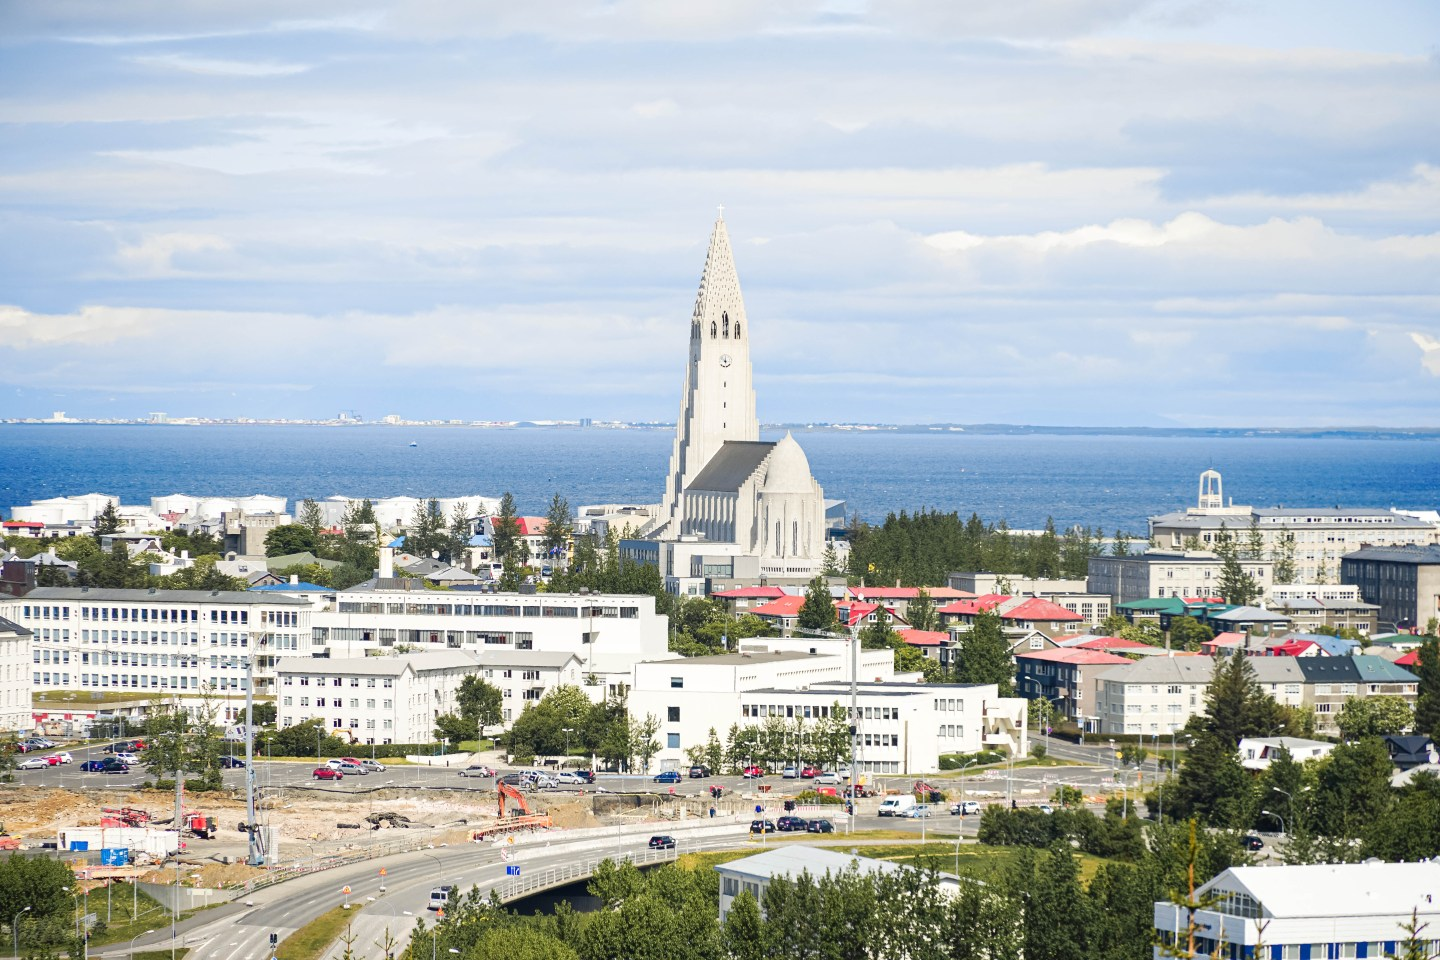 The view of Reykjavik from the top of the Perlan Museum